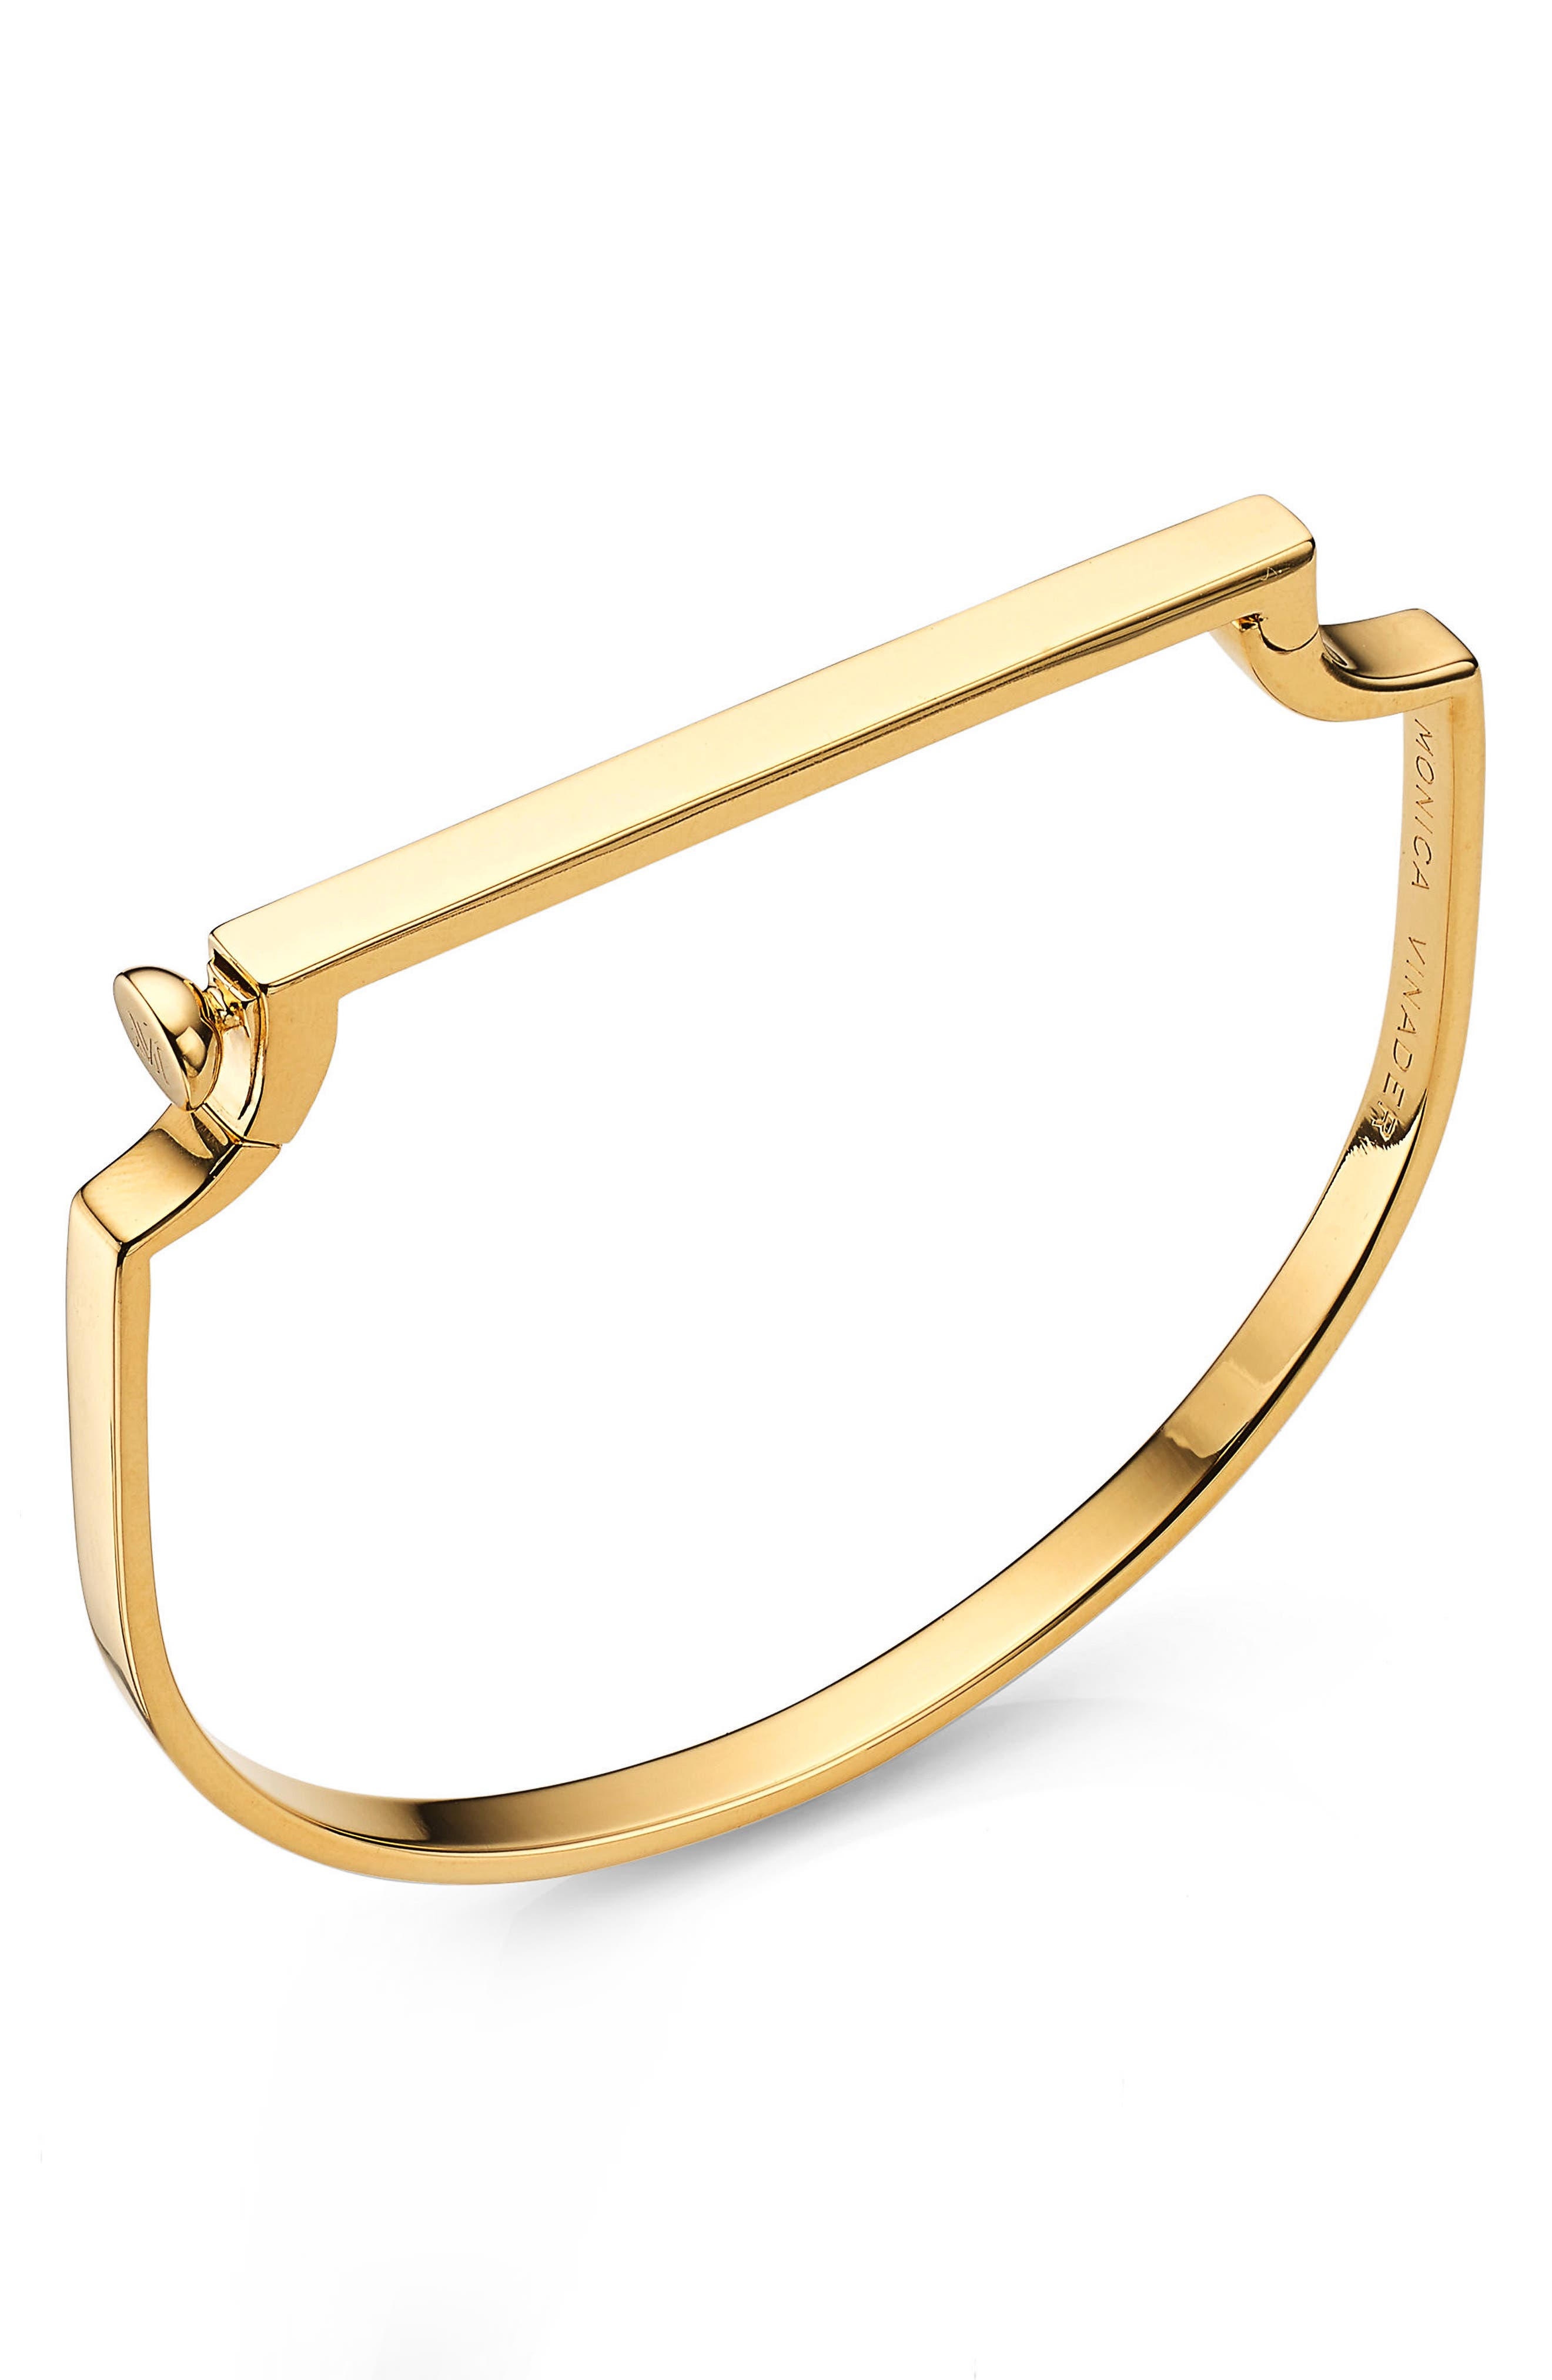 Engravable Signature Thin Bangle Bracelet,                         Main,                         color, YELLOW GOLD